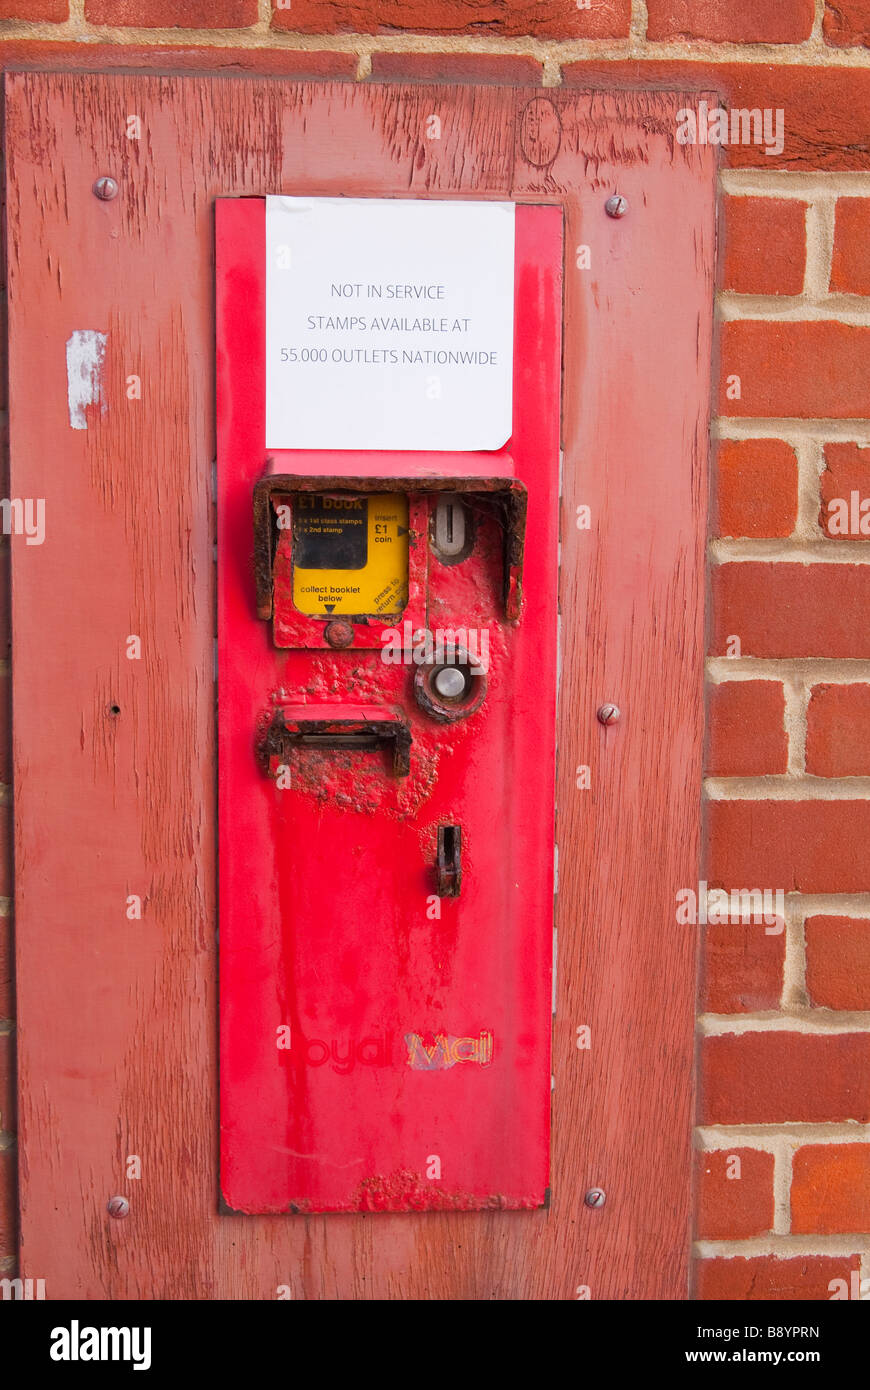 A Close Up Of An Old Postage Stamp Vending Machine With A